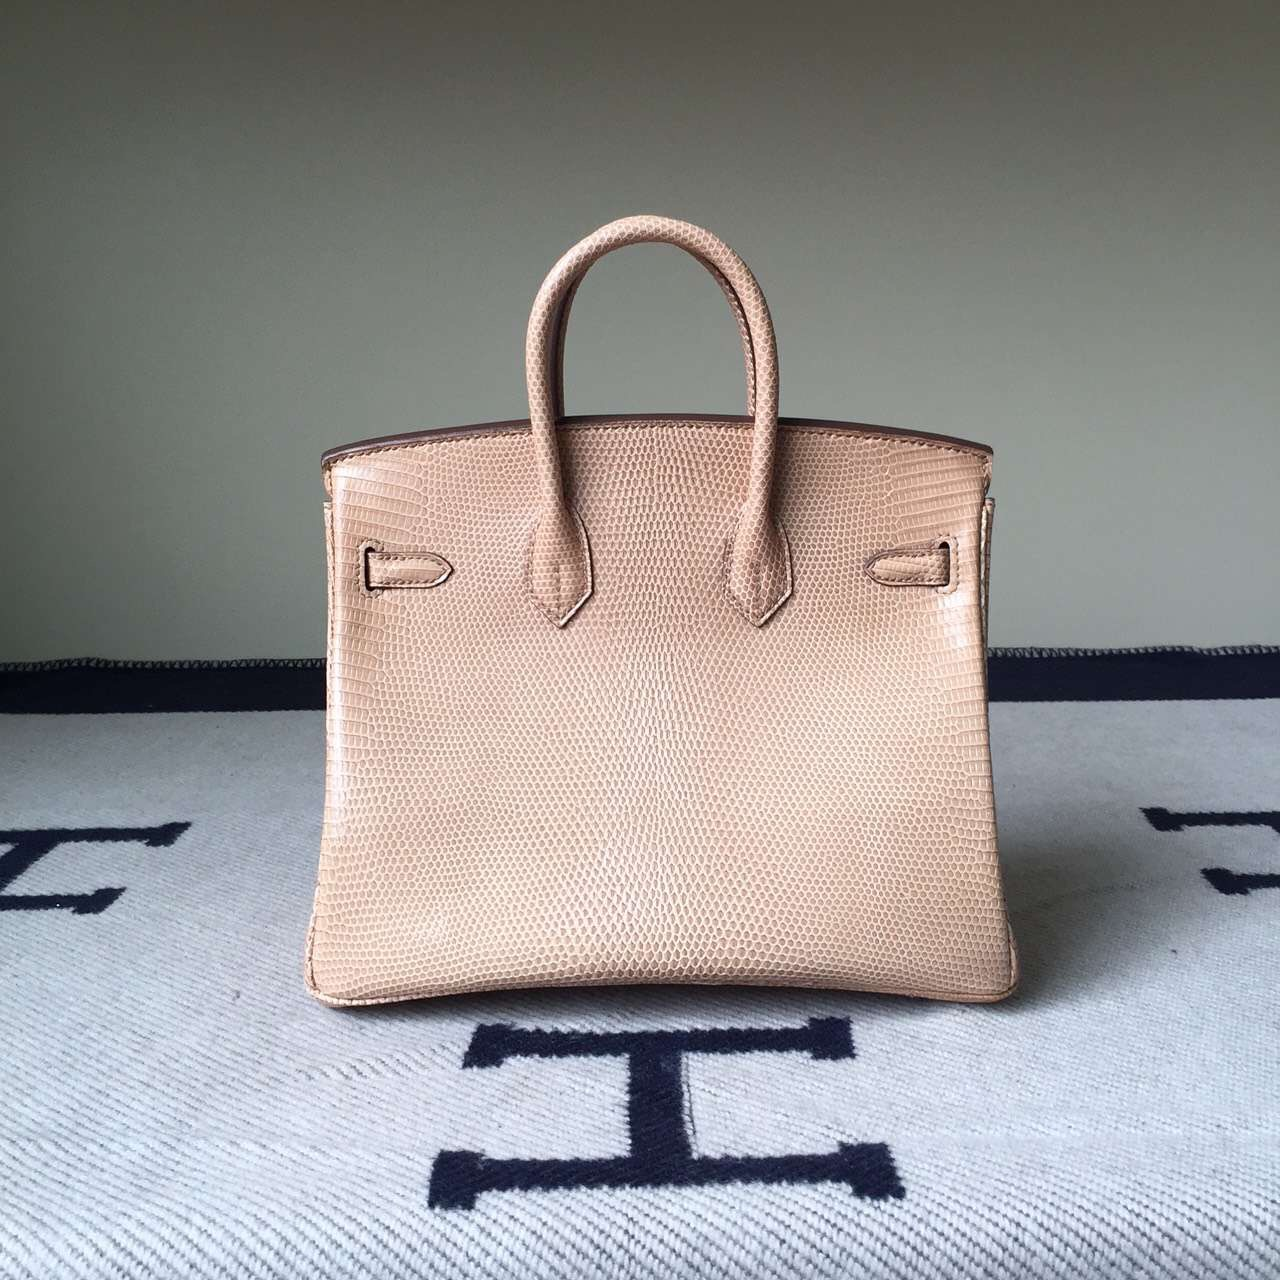 Discount Hermes Birkin Bag 25cm Apricot Lizard Skin Leather